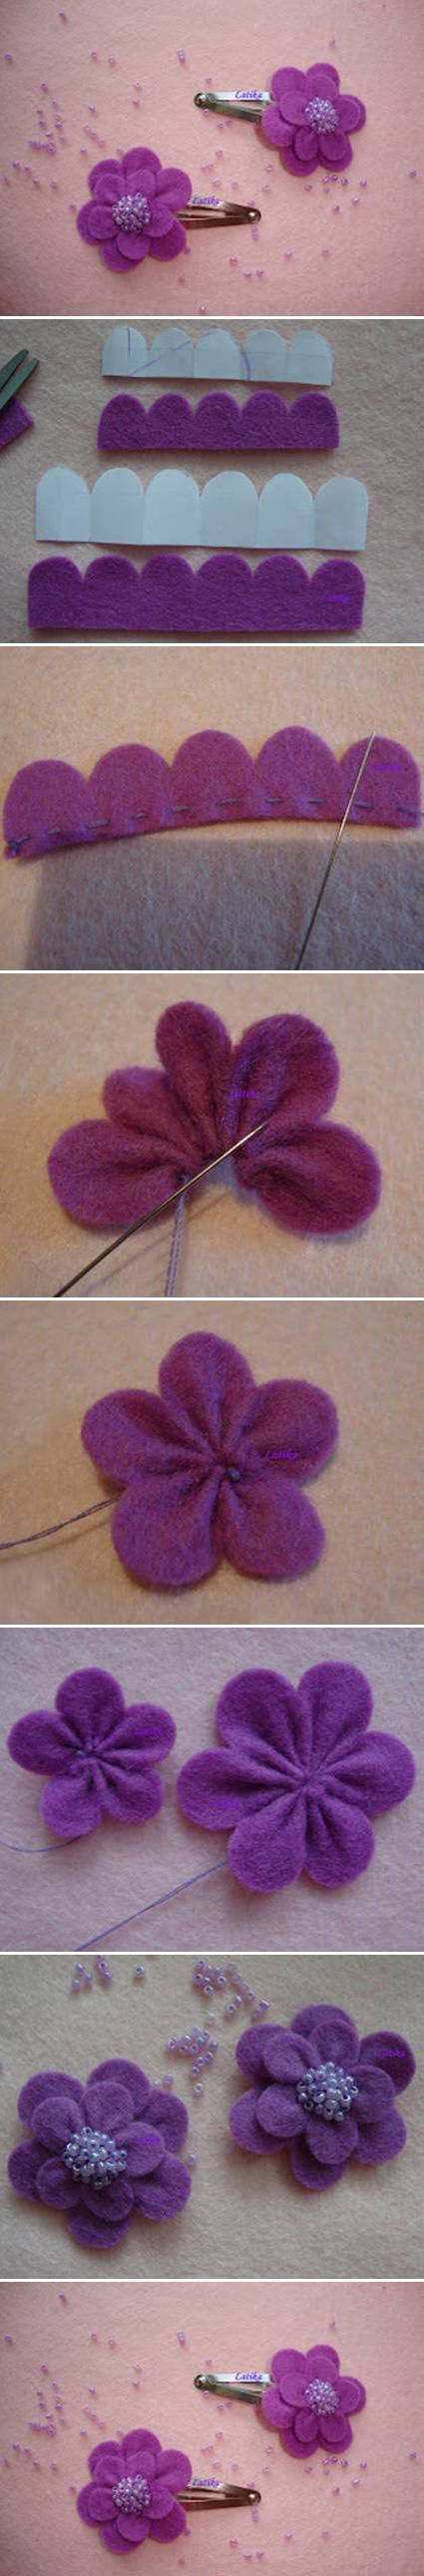 Purple Hair Clip | DIY & Crafts Tutorials